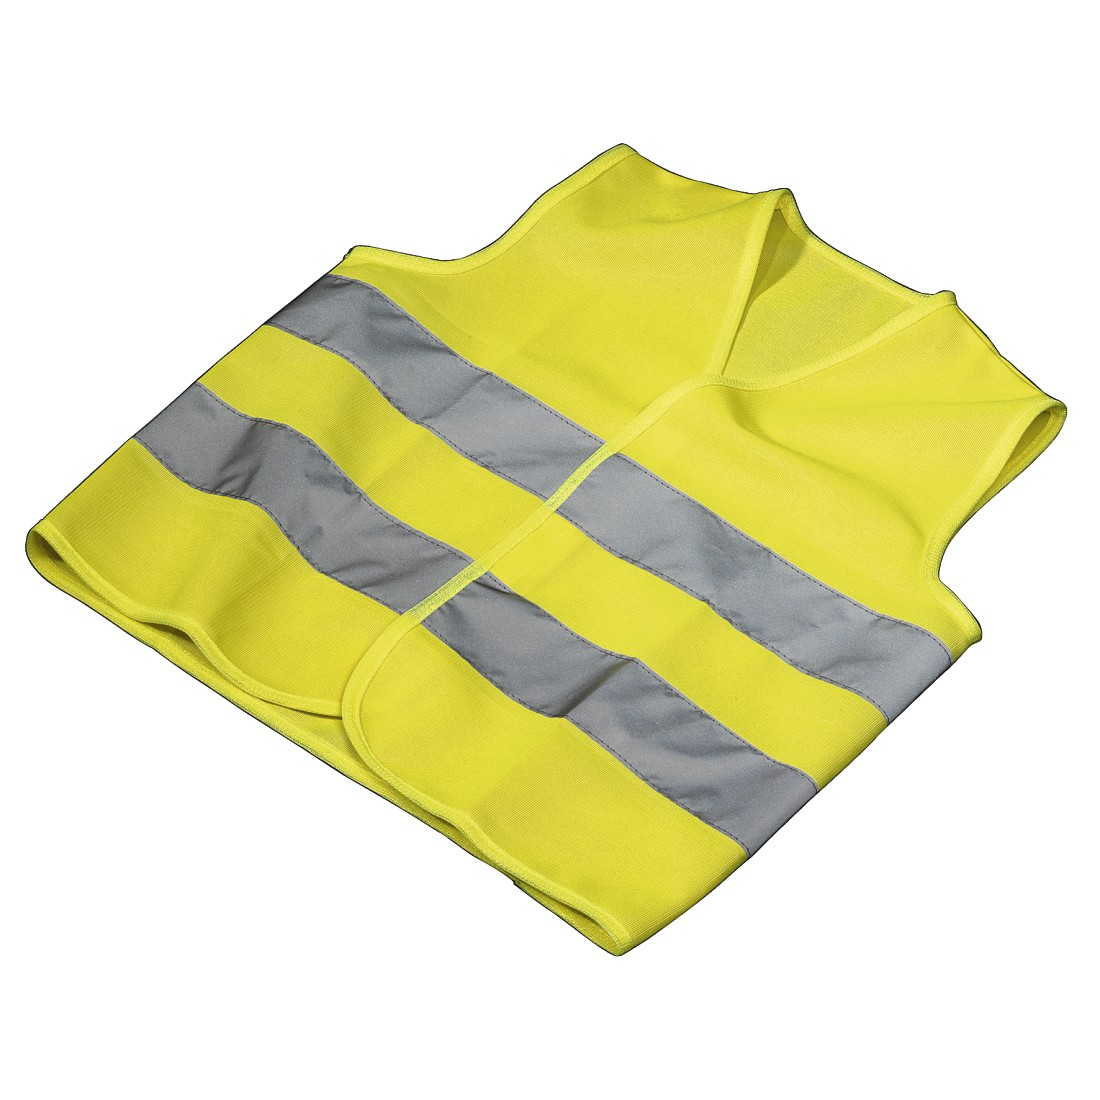 "abx High-Res Image - Hama, ""Automotive"" Children's Safety Vest, neon yellow"